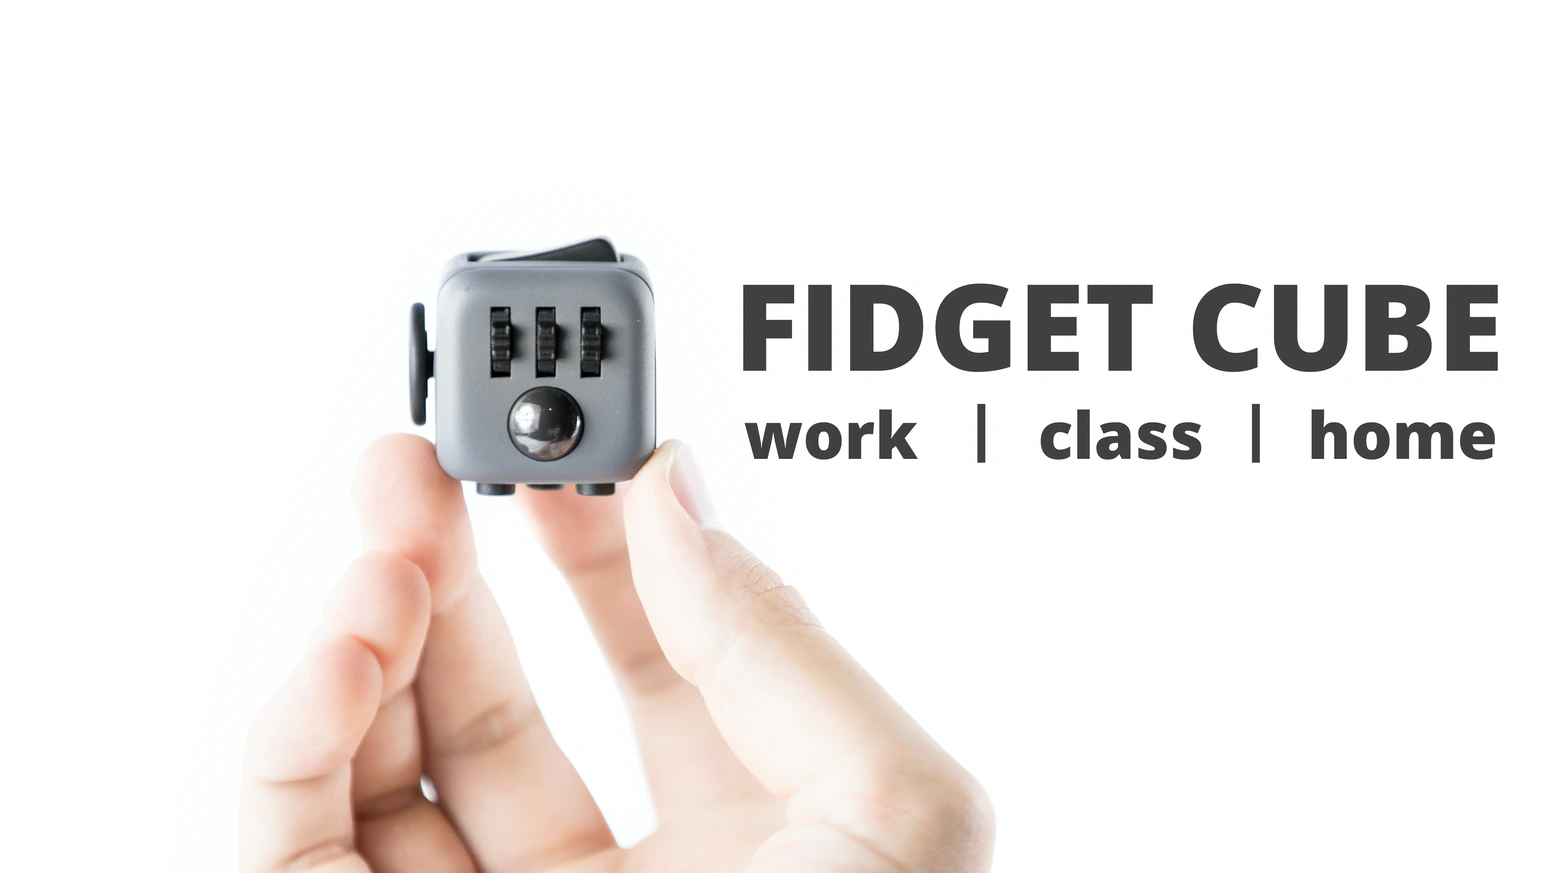 Fidget Cube is one of the most successful kickstarter campaigns.